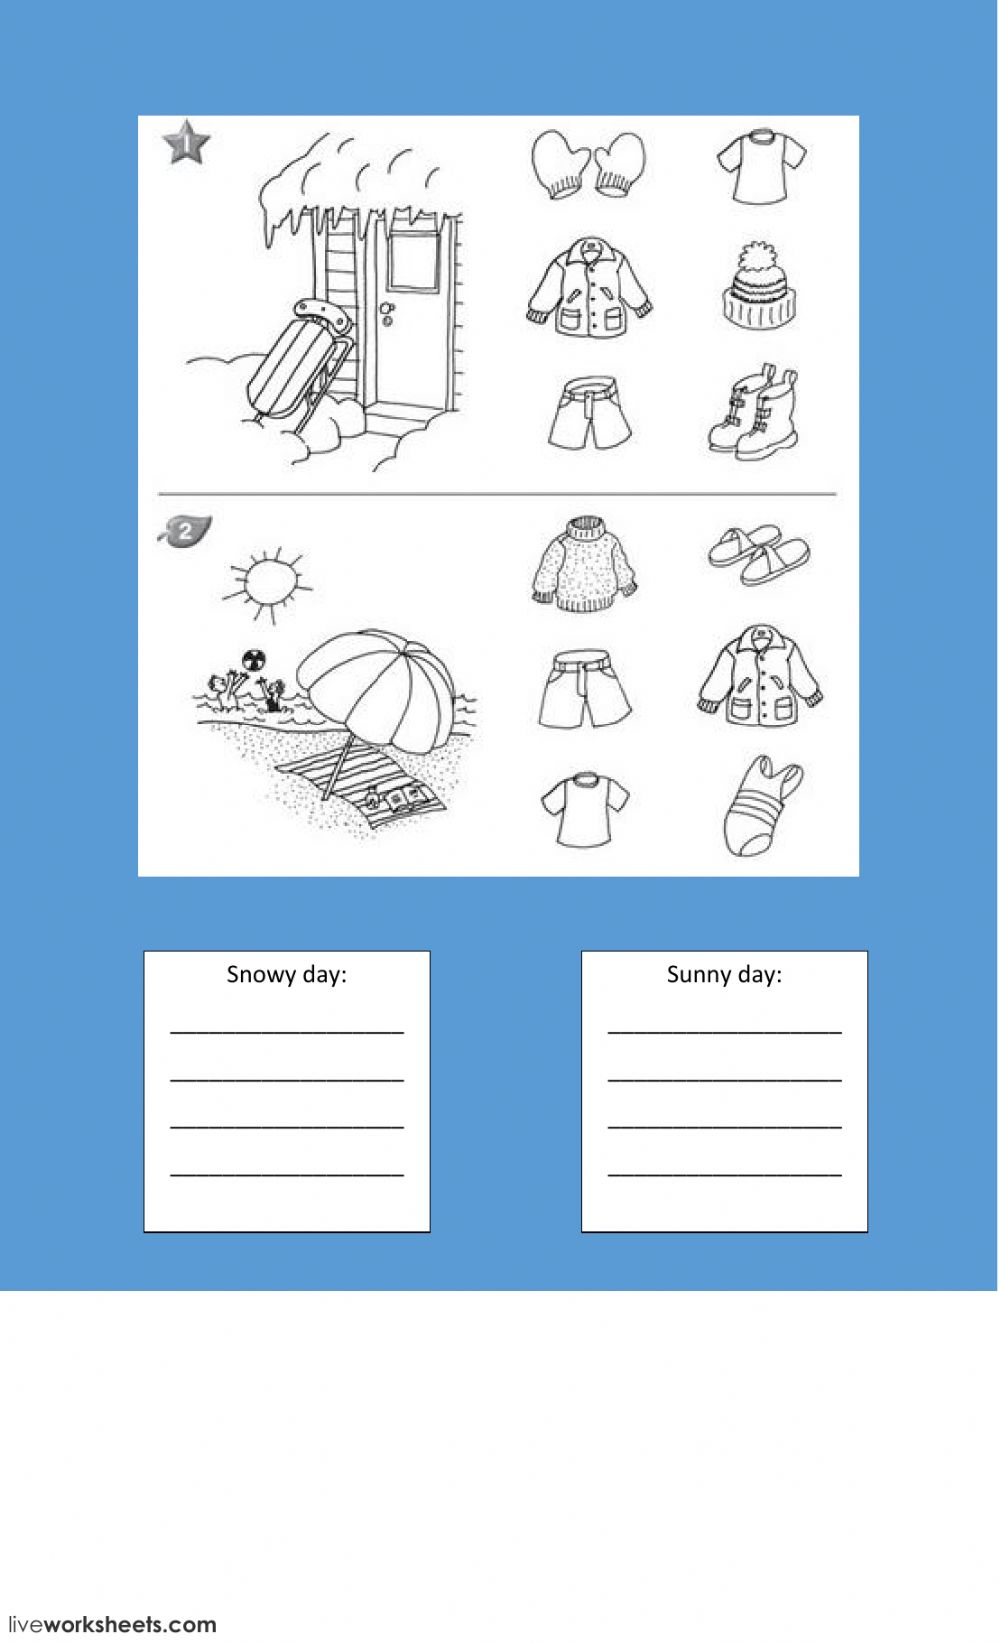 Clothes And Weather The Clothes Worksheet